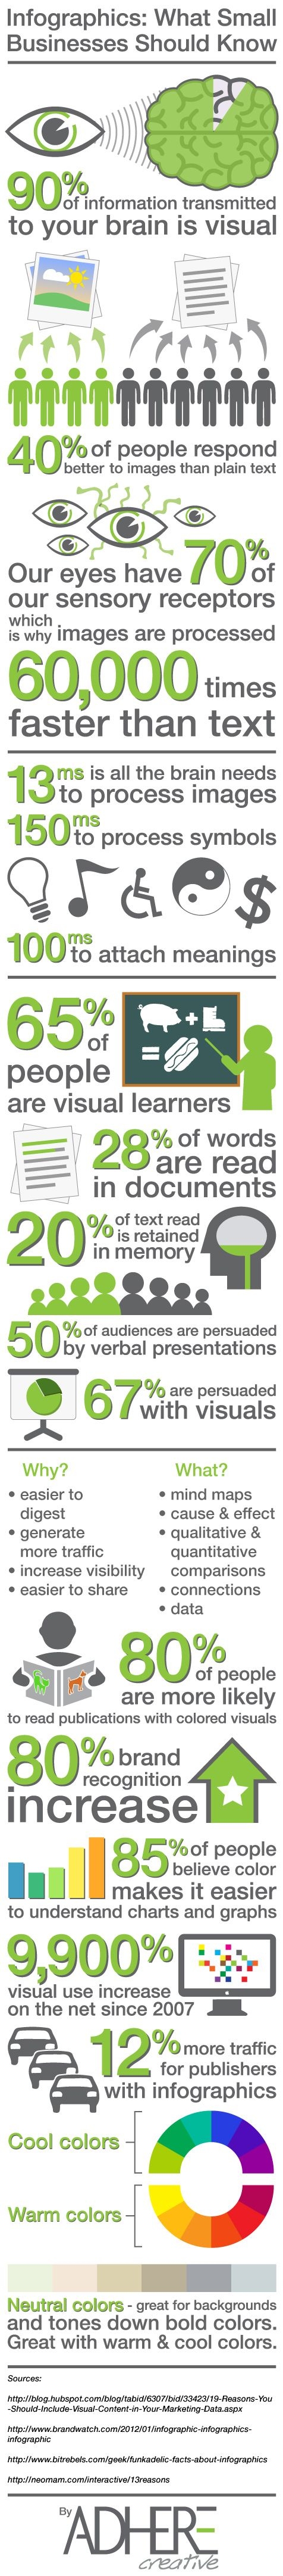 Infographics and What Small Businesses Should Know [Infographic]